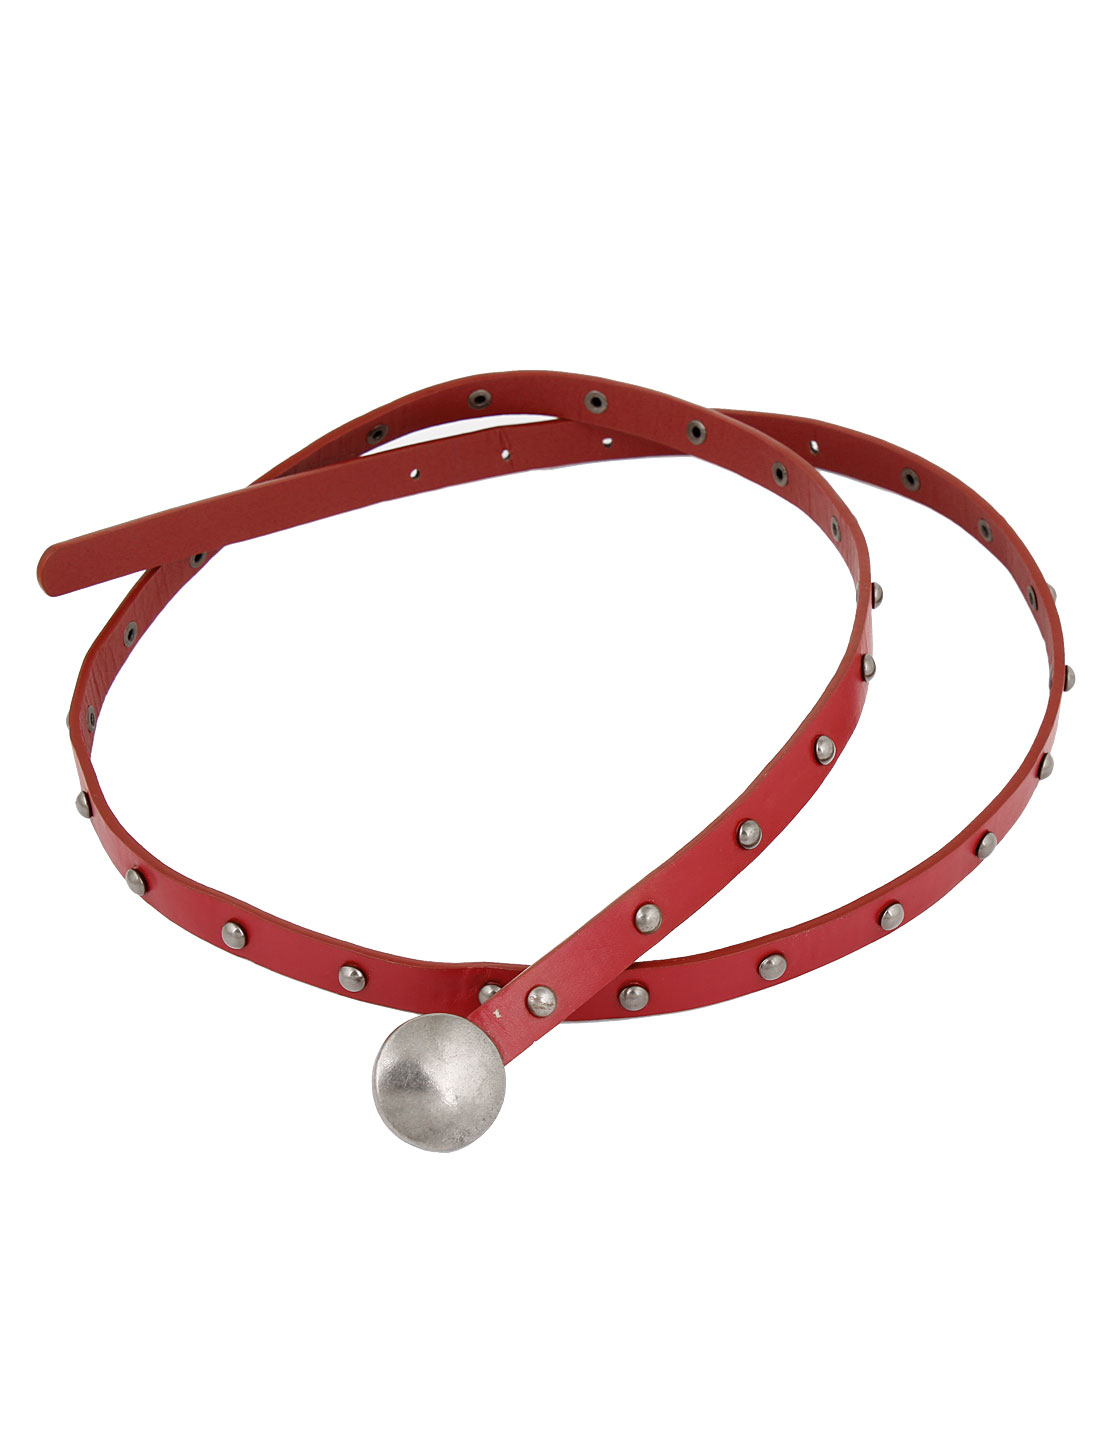 Lady Silver Tone Rivet Ornament Adjustable Faux Leather Wasit Belt Red